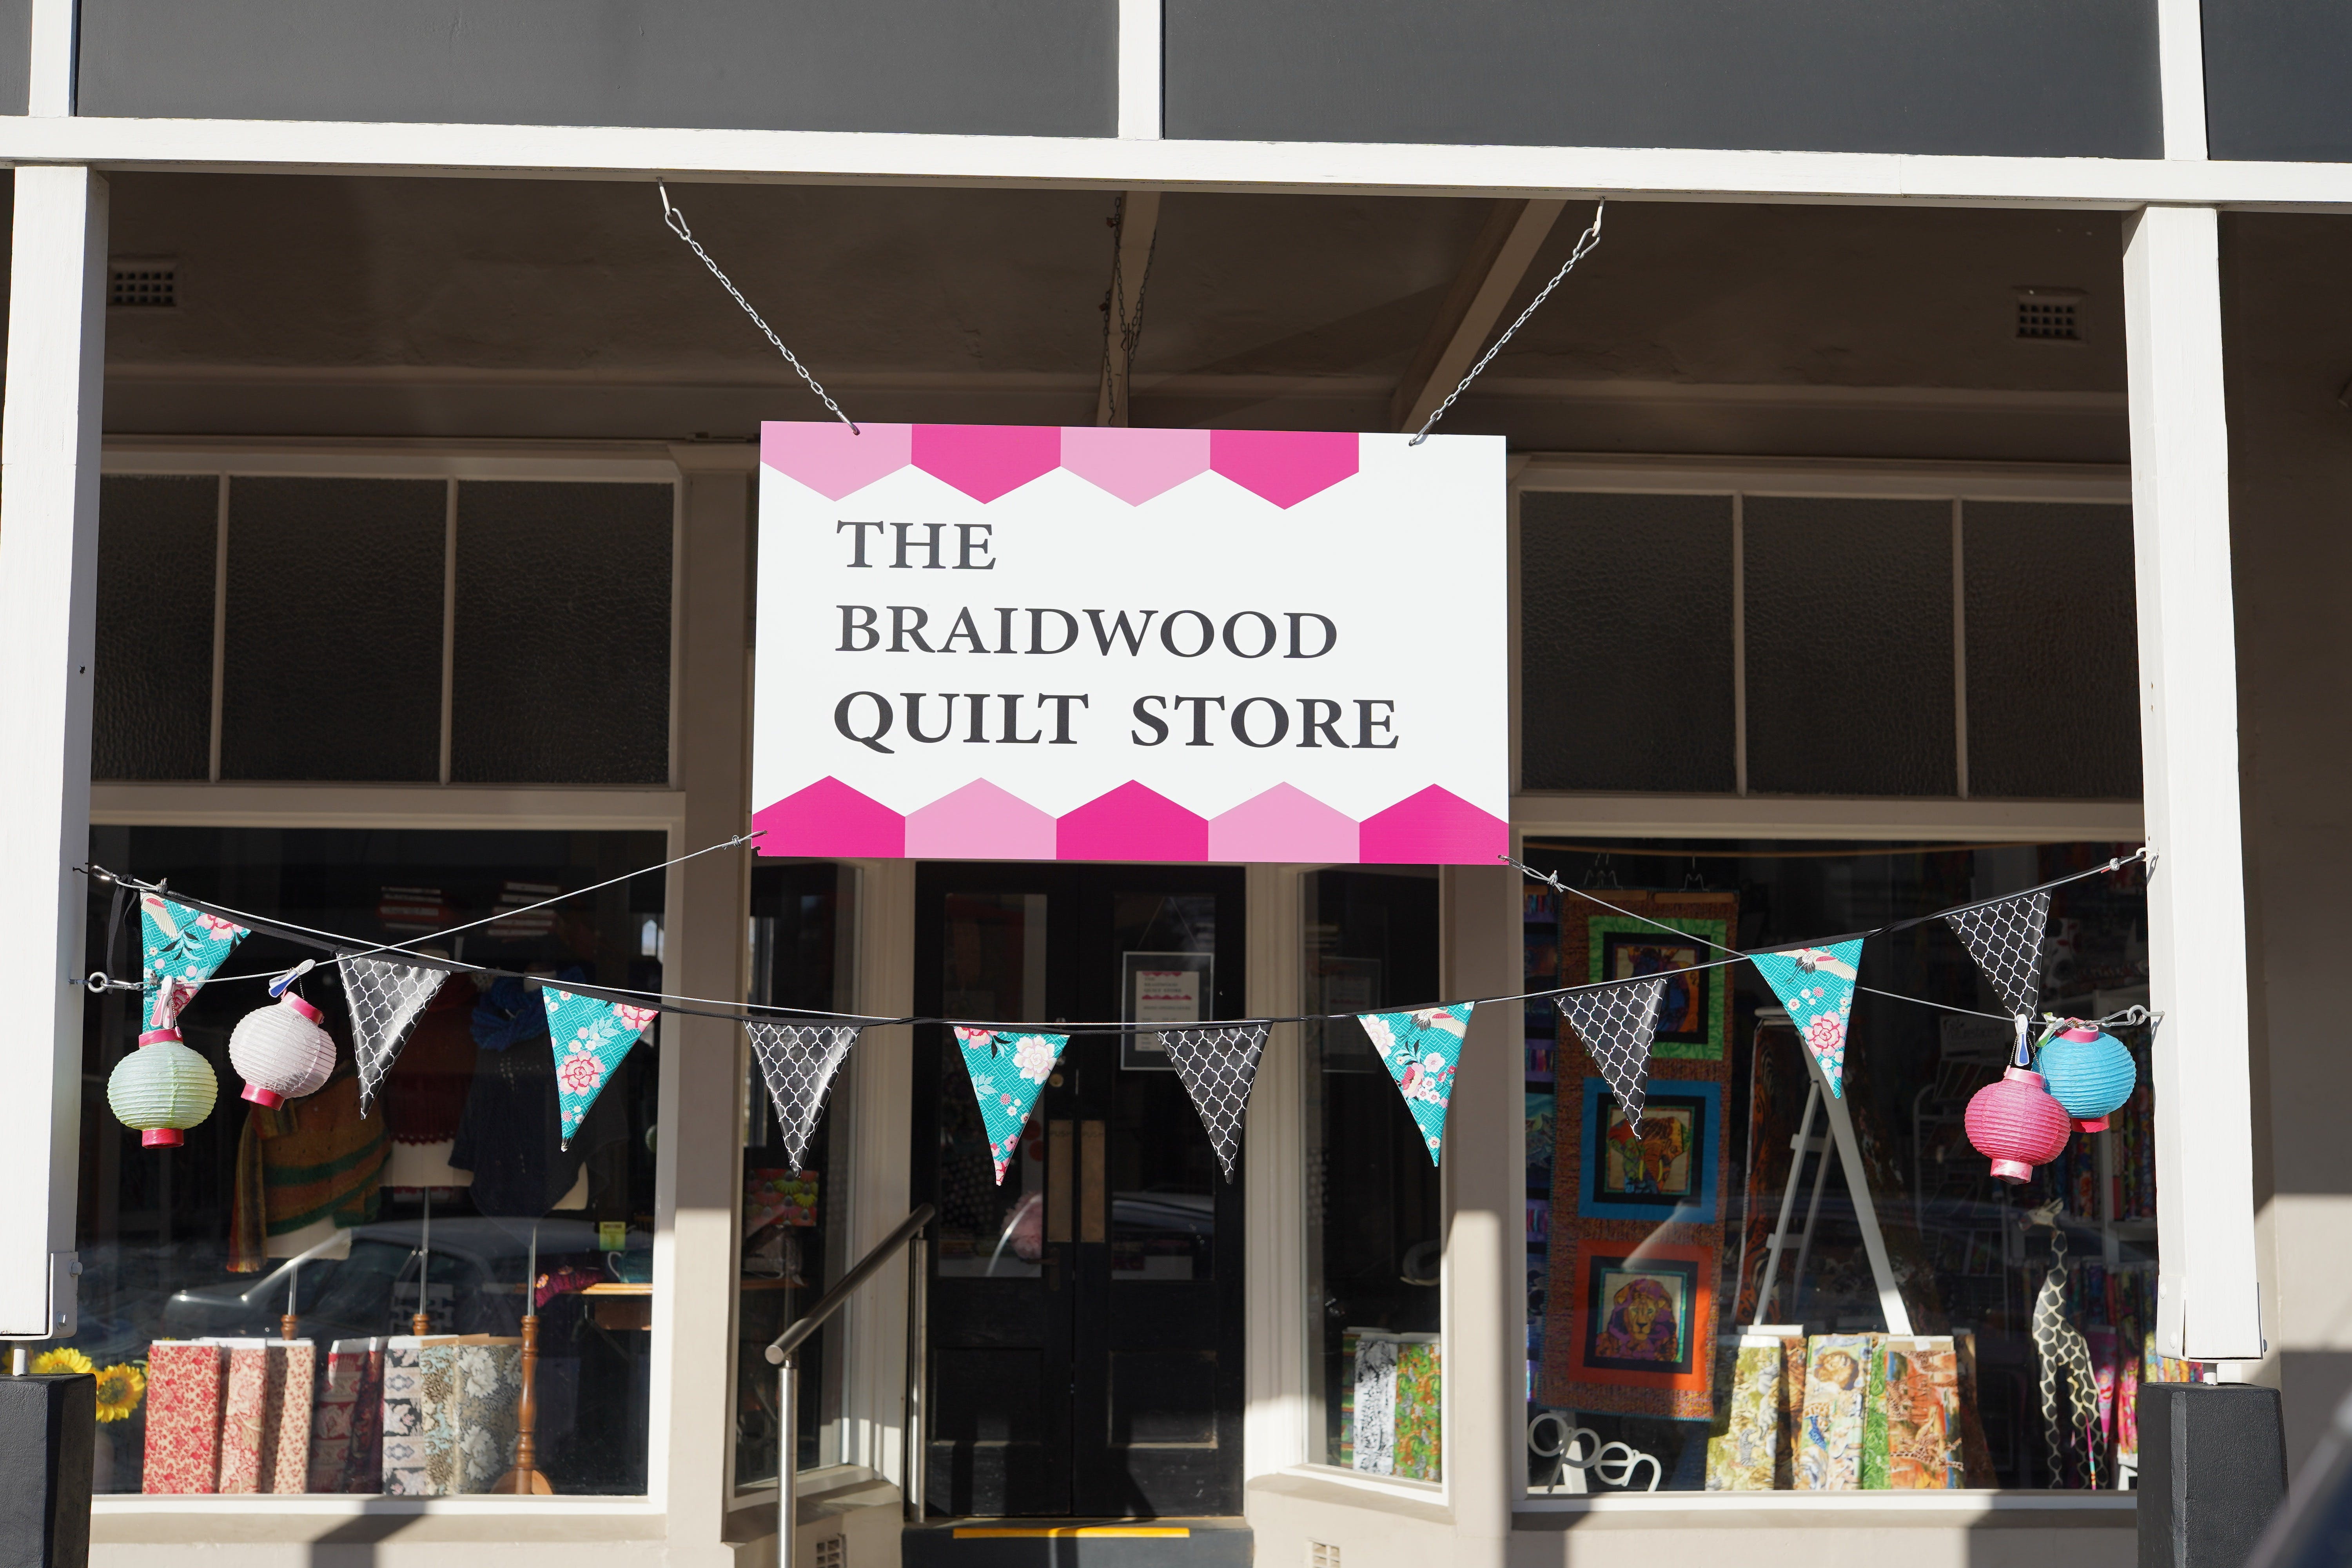 The Braidwood Quilt Store - ACT Tourism